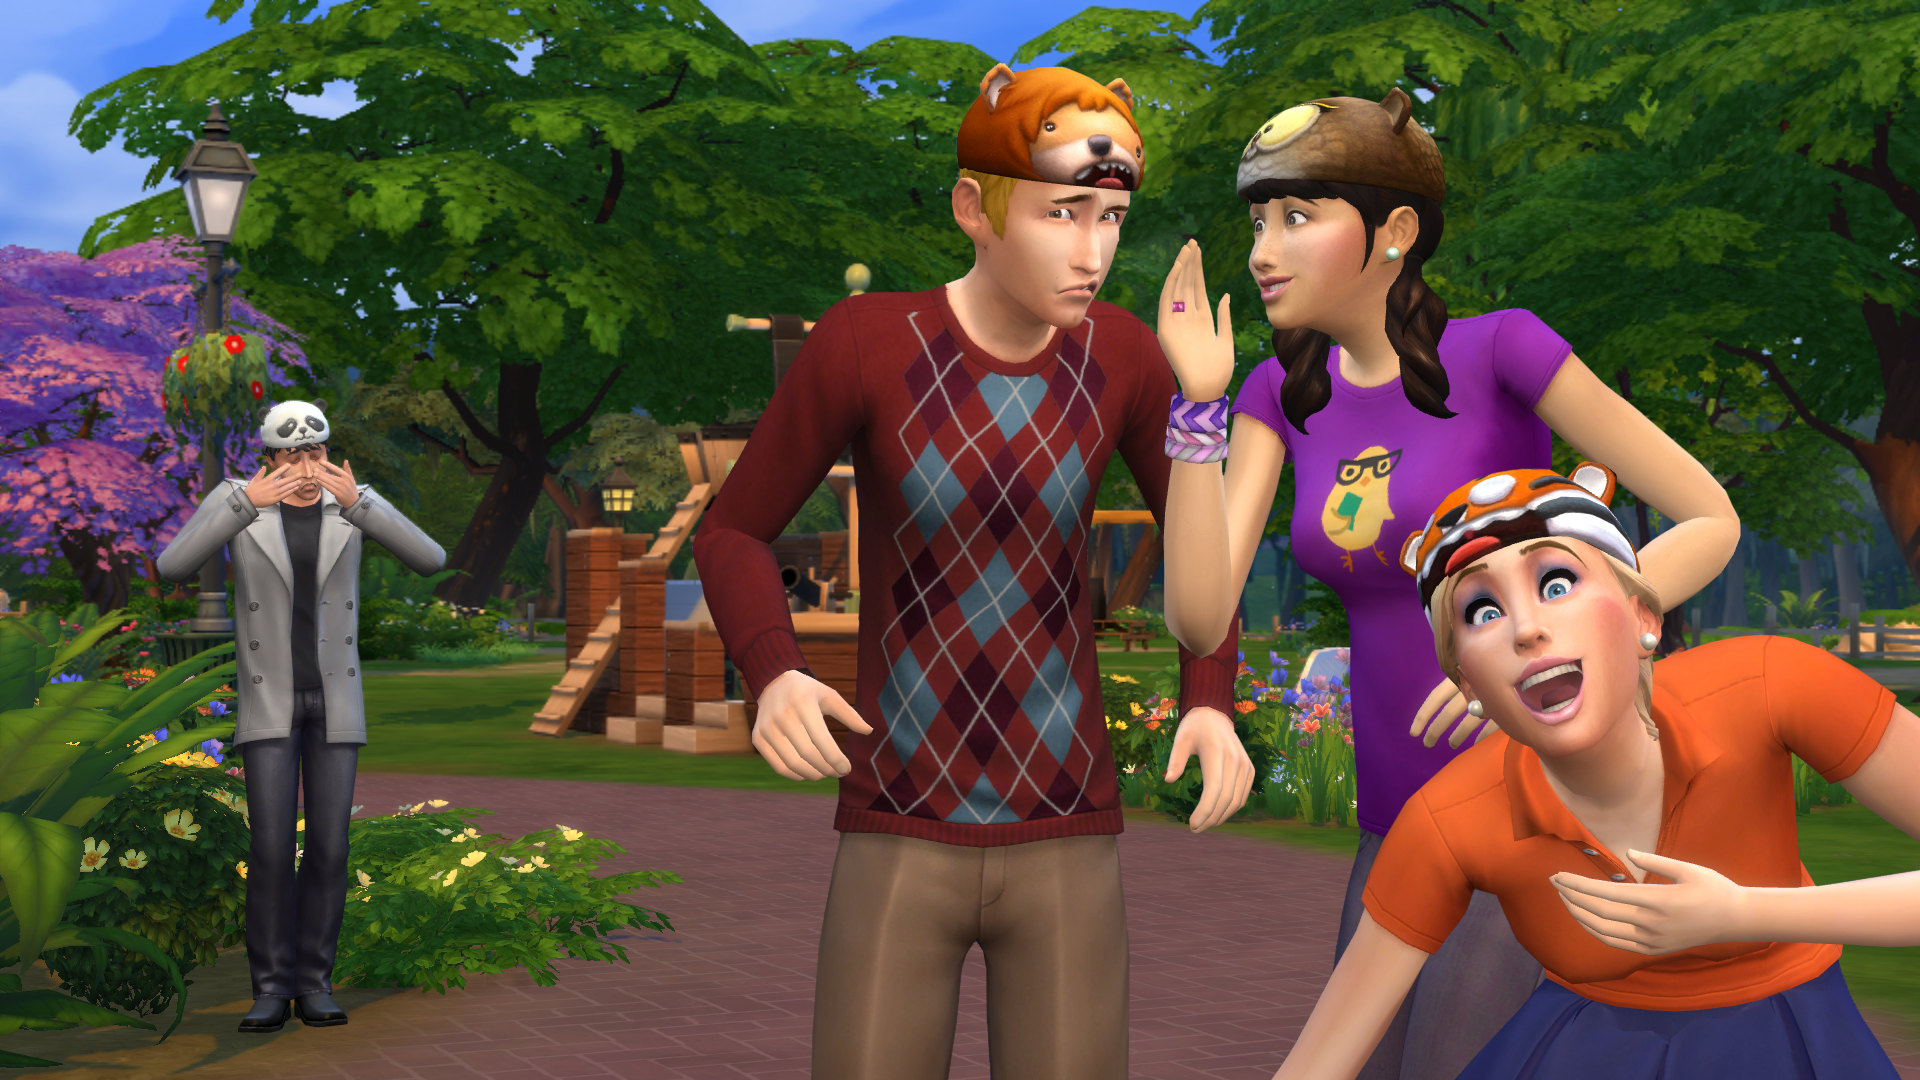 Two Sims are whispering to each other while another laughs. There is a third Sim in the background crying.